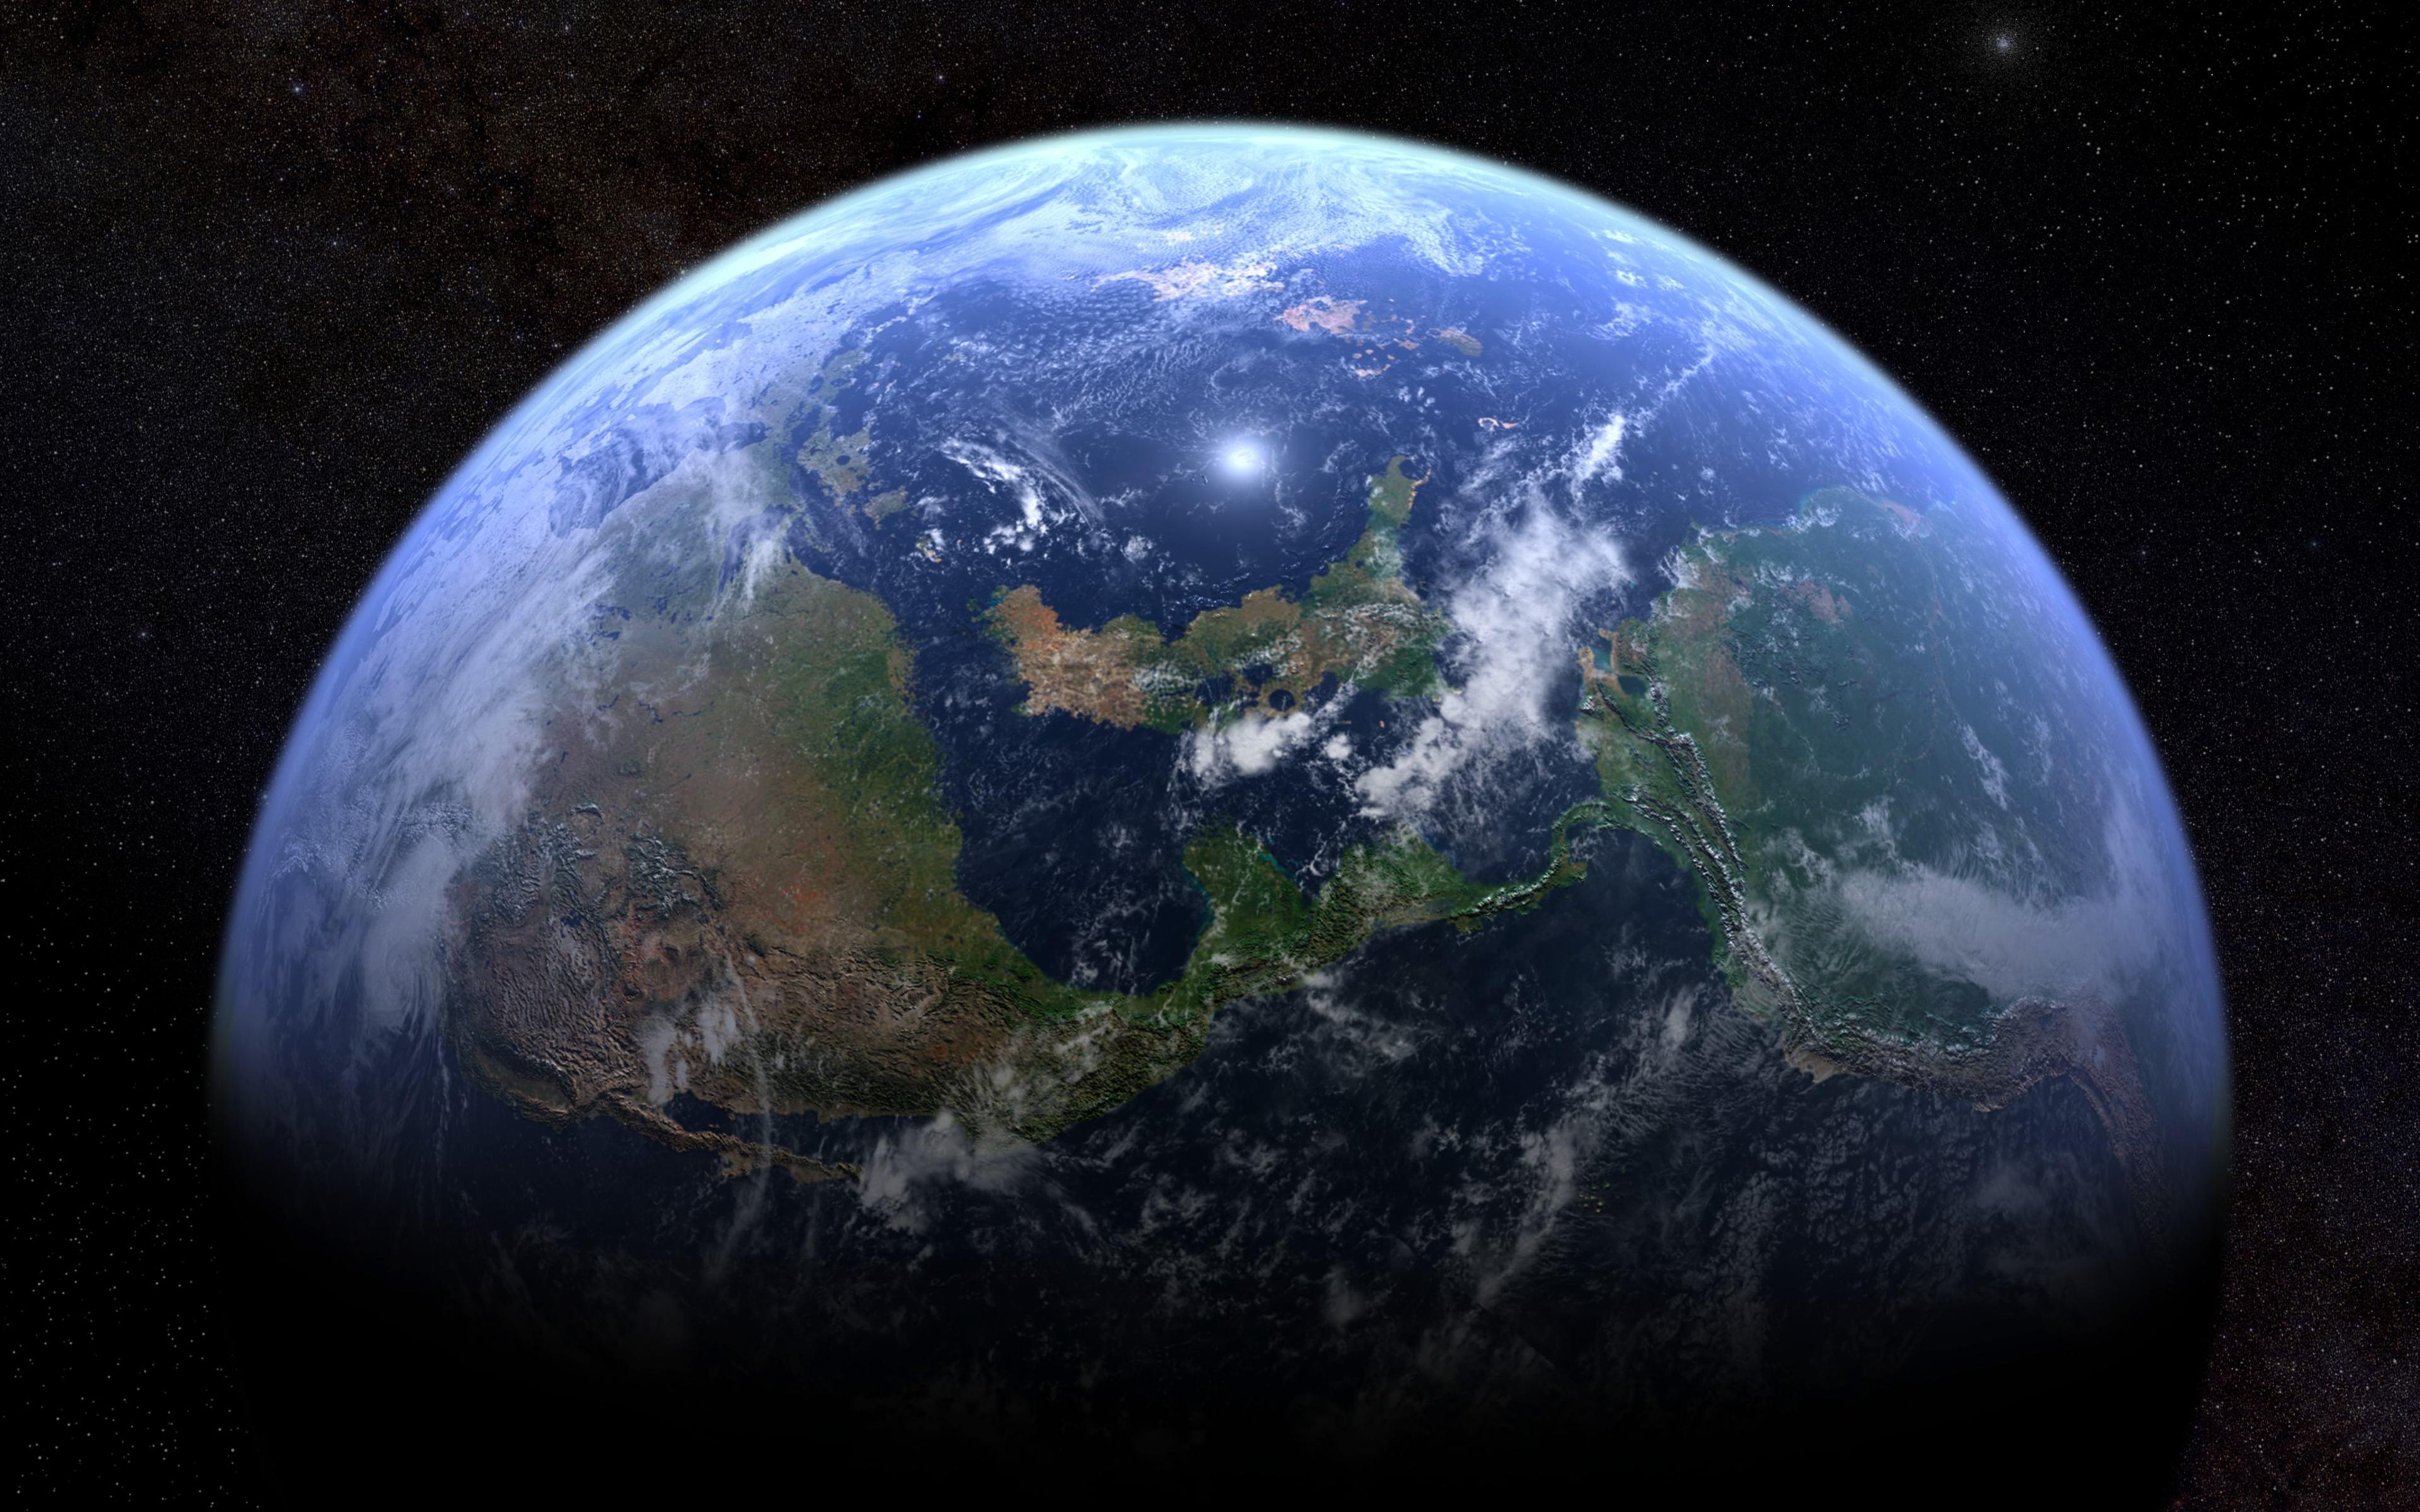 3840x2400 Earth Space 4k HD 4k Wallpapers, Images ...